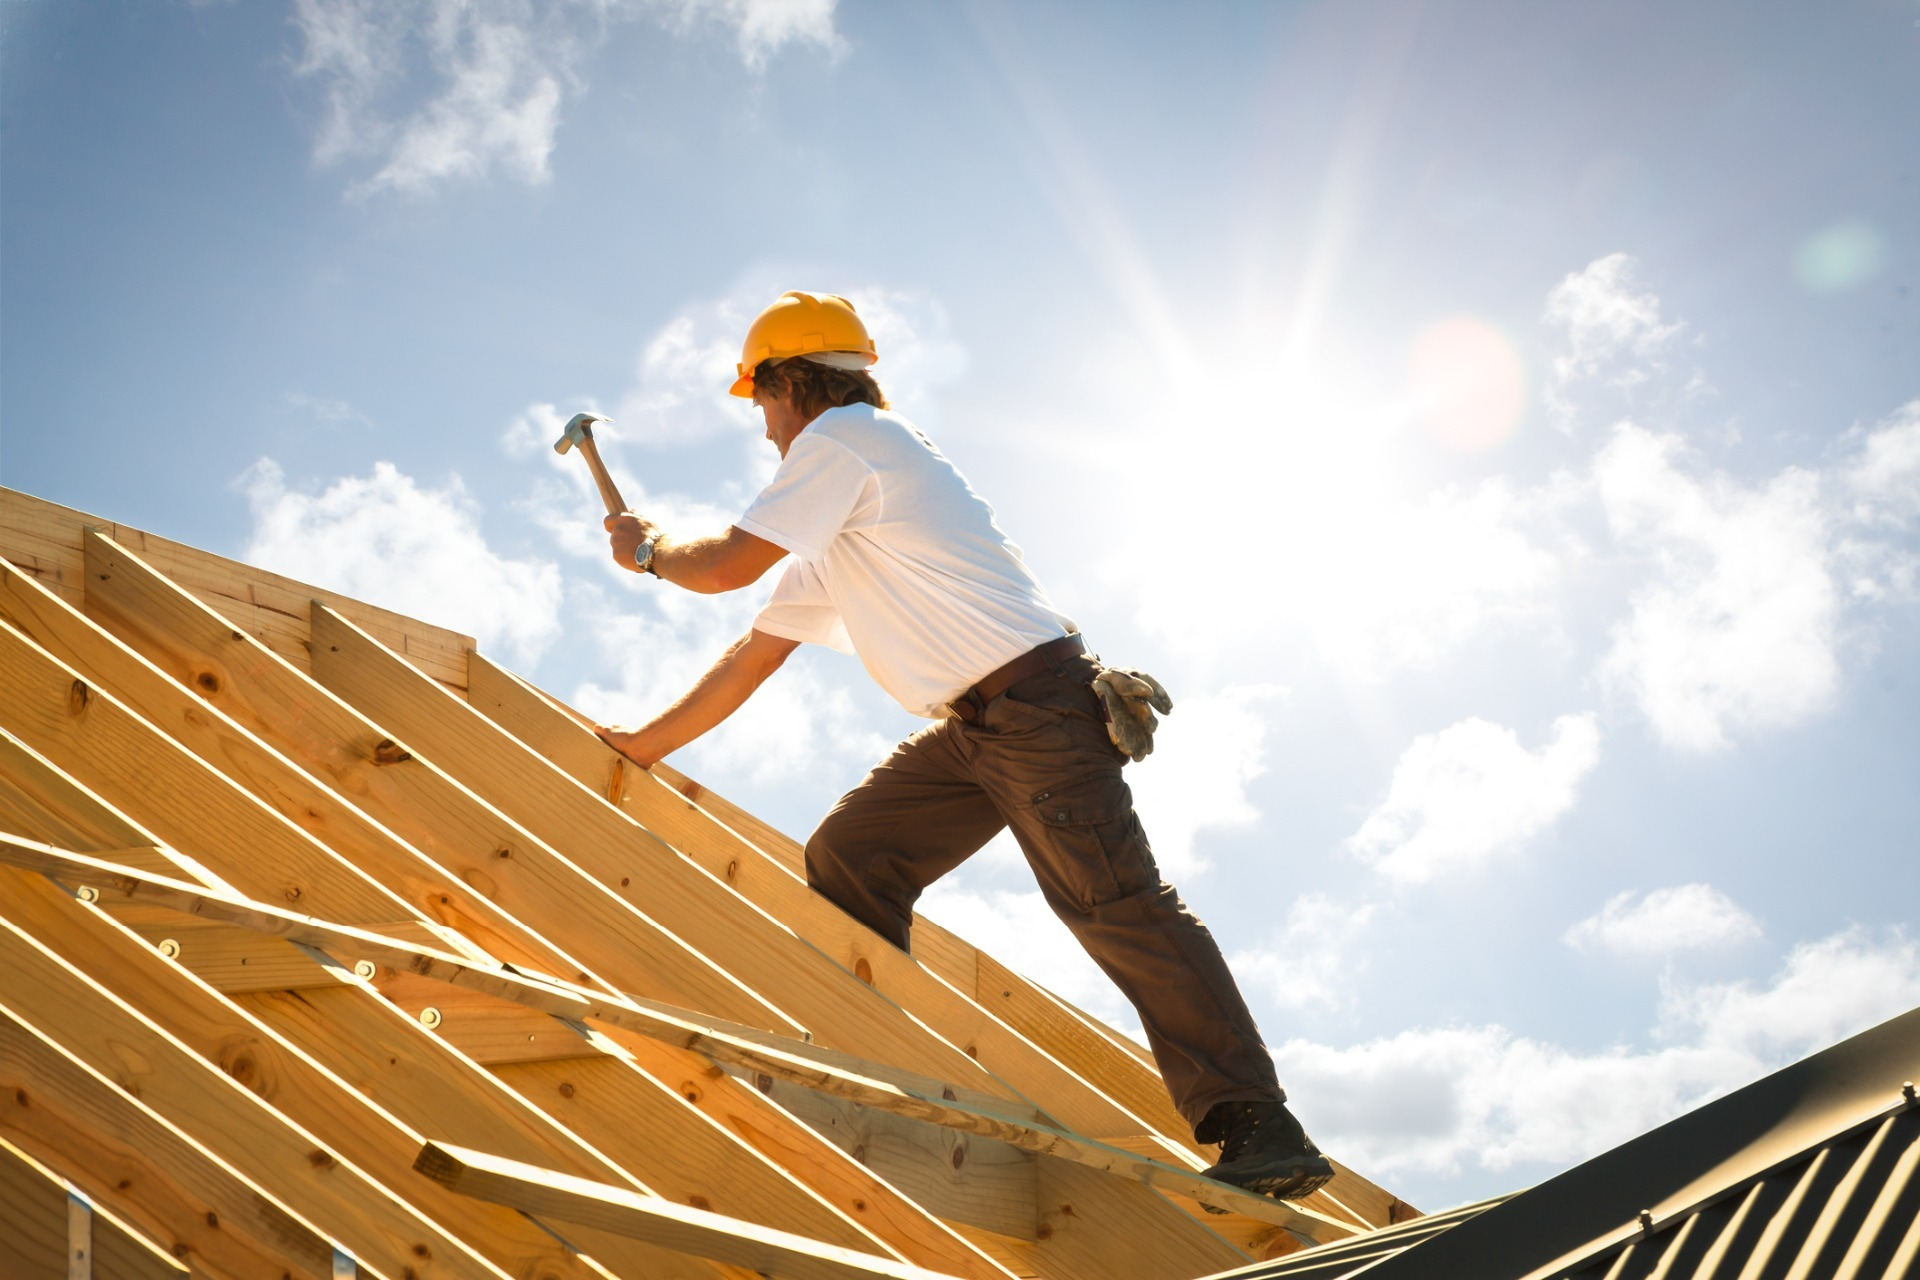 A man working on a roof following all health and safety guidelines possible.